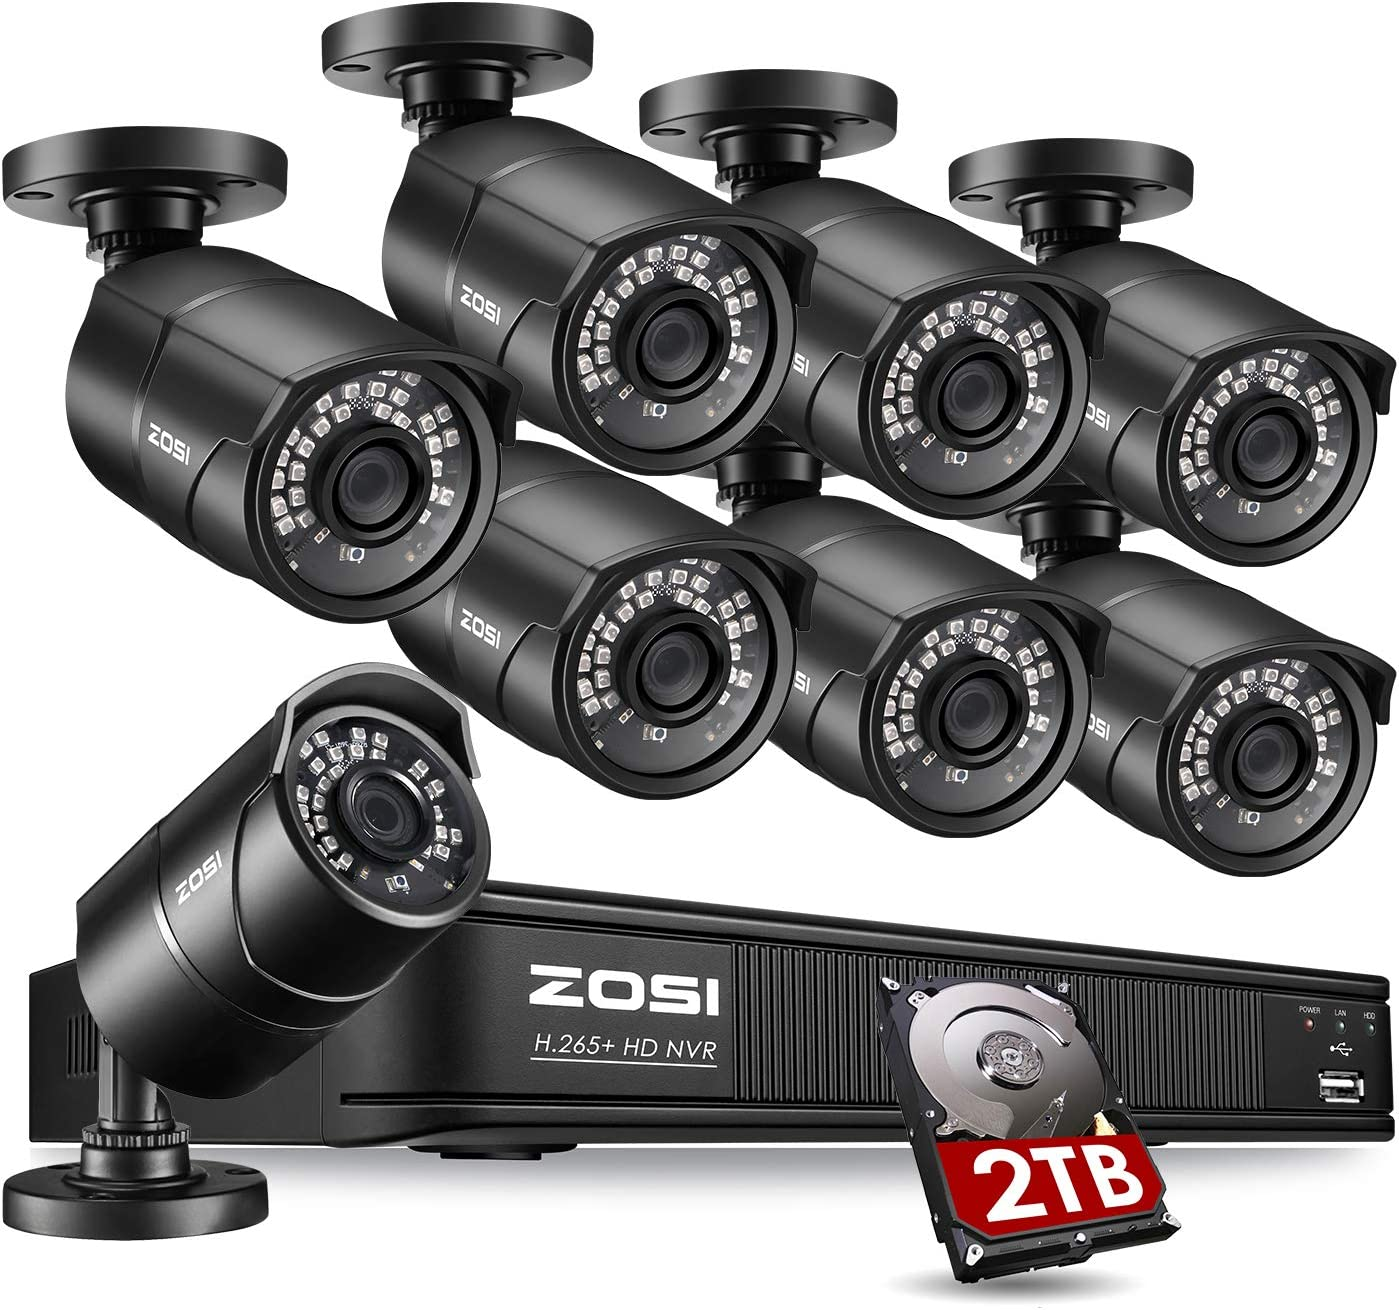 ZOSI 1080p PoE Home Security Camera System Outdoor Indoor,8CH 5MP H.265+ PoE NVR Recorder with 2TB Hard Drive and (8) 1080p Surveillance Bullet PoE Network Cameras with 120ft Long Night Vision